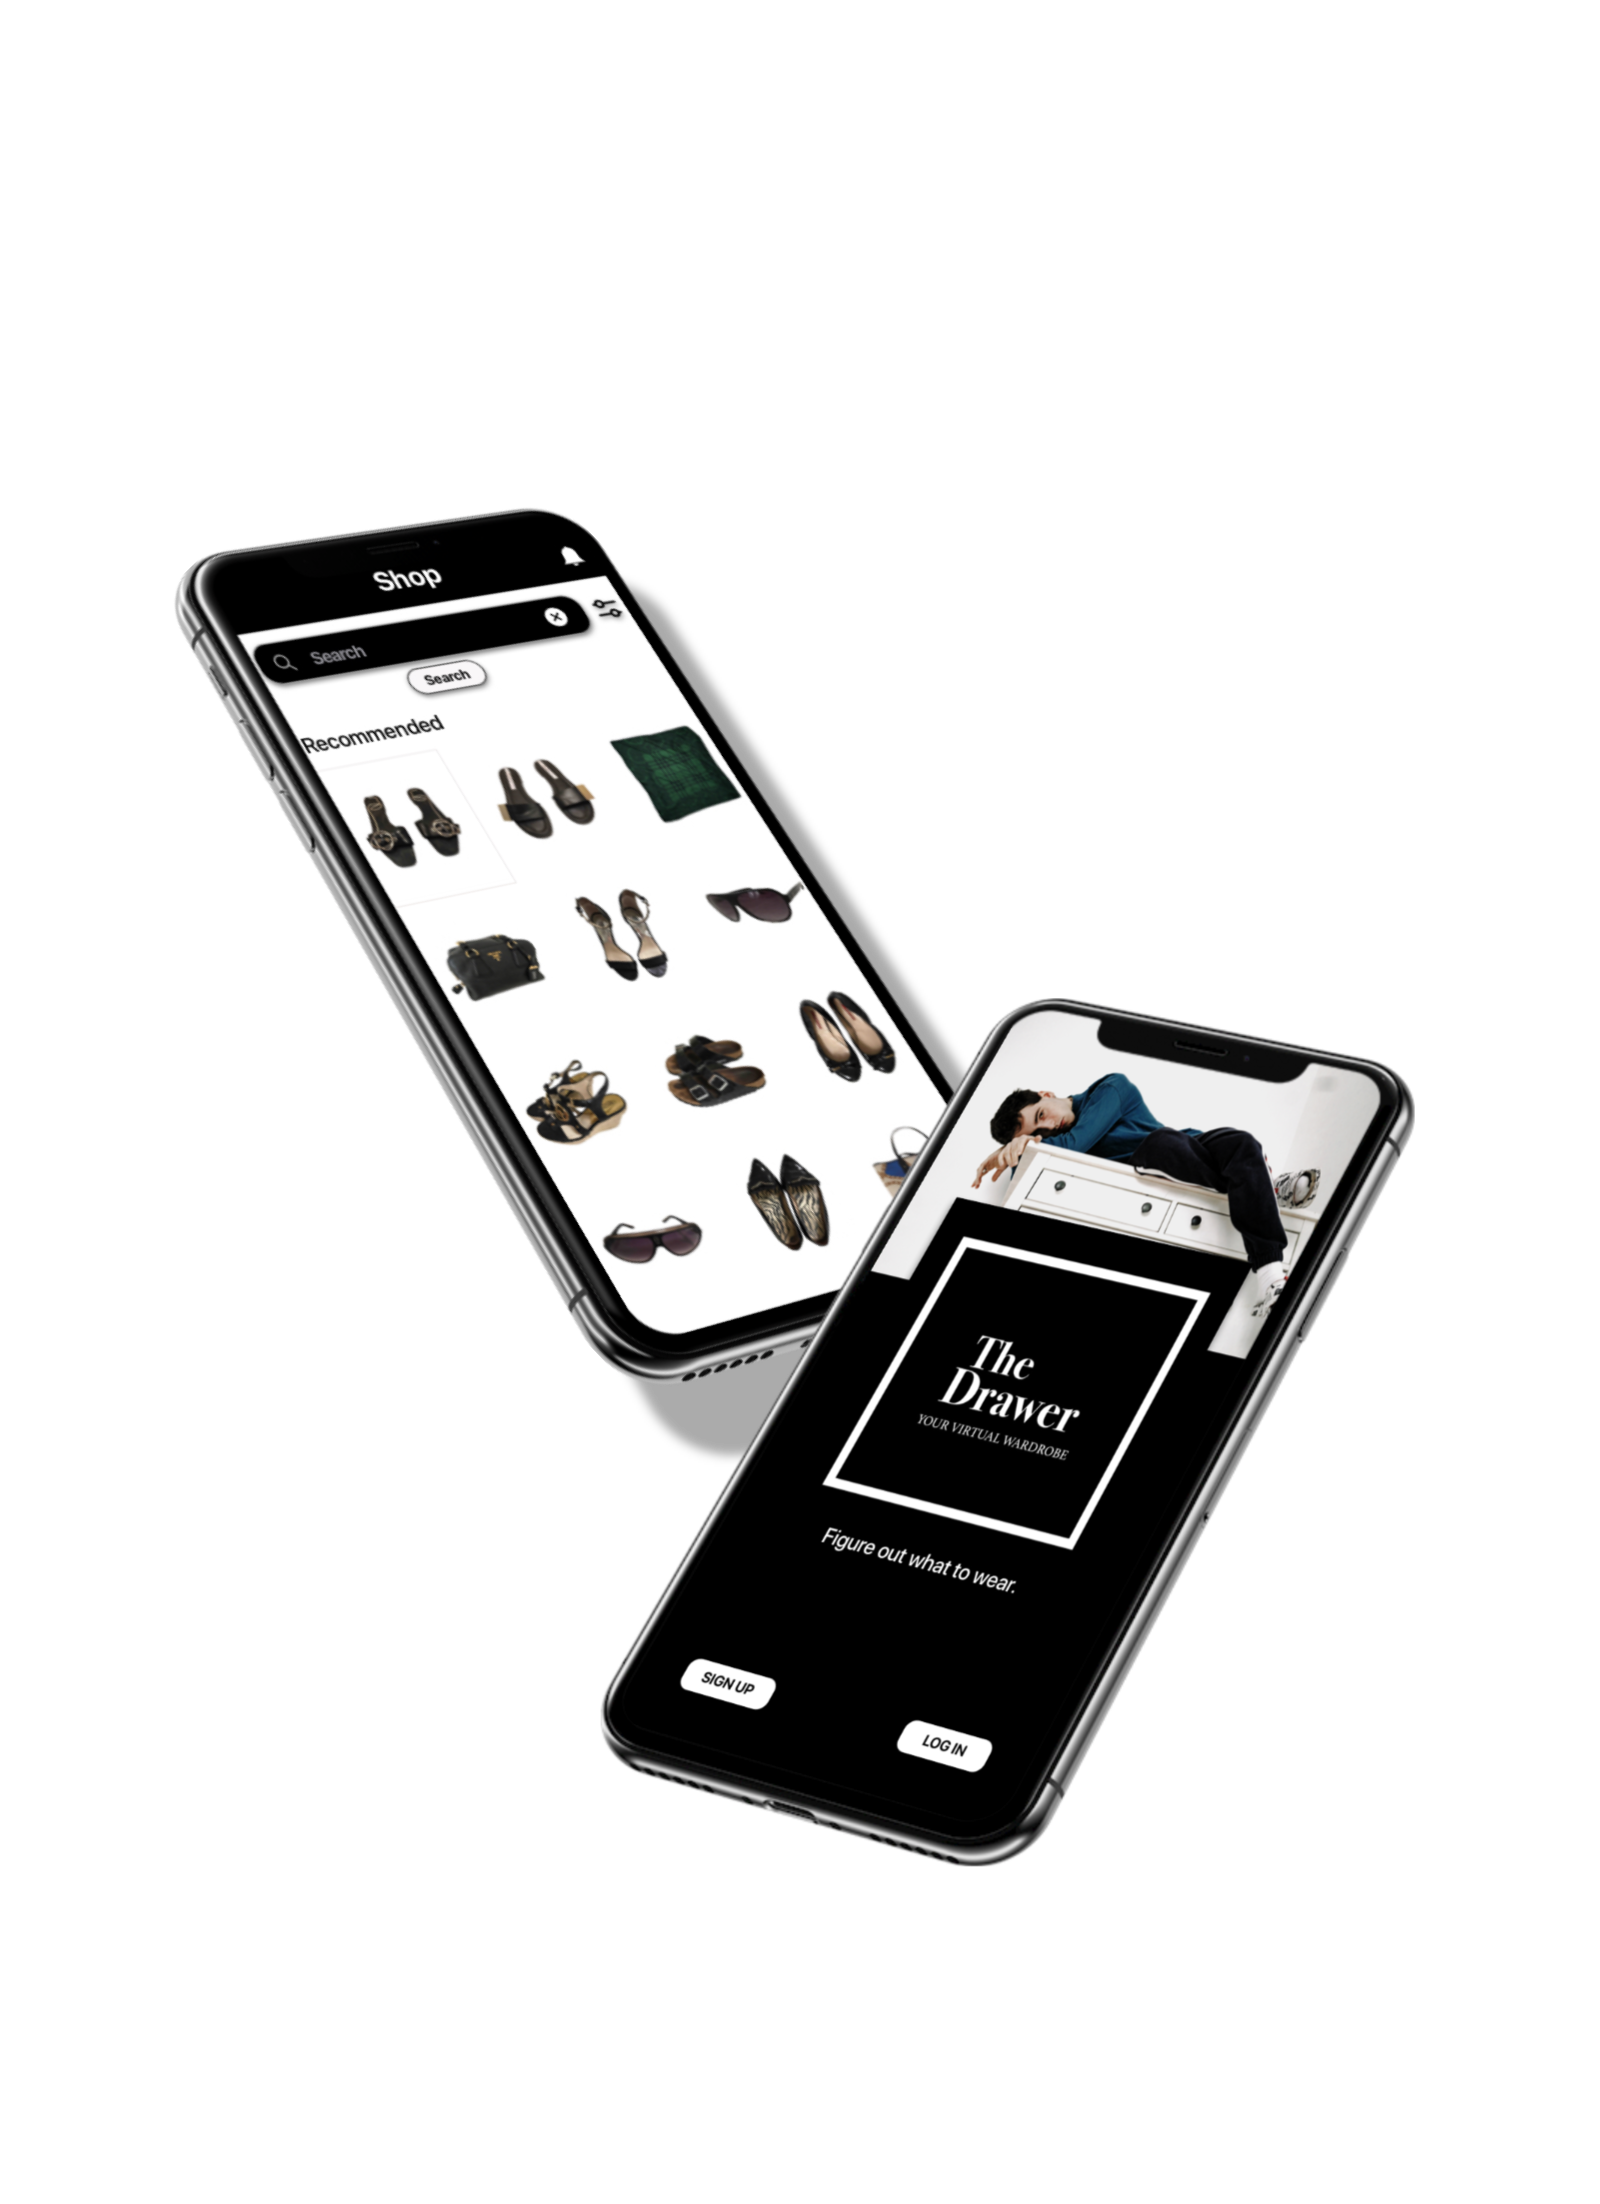 The Drawer - The Drawer is an application which aims at helping people coordinate their clothes to create personalised & trendy outfits.Whether it's for a special occasion or just to get inspiration, the virtual wardrobe gives you ideas on what to wear based on your real wardrobe and even comes up with curated recommendations to refine your look.